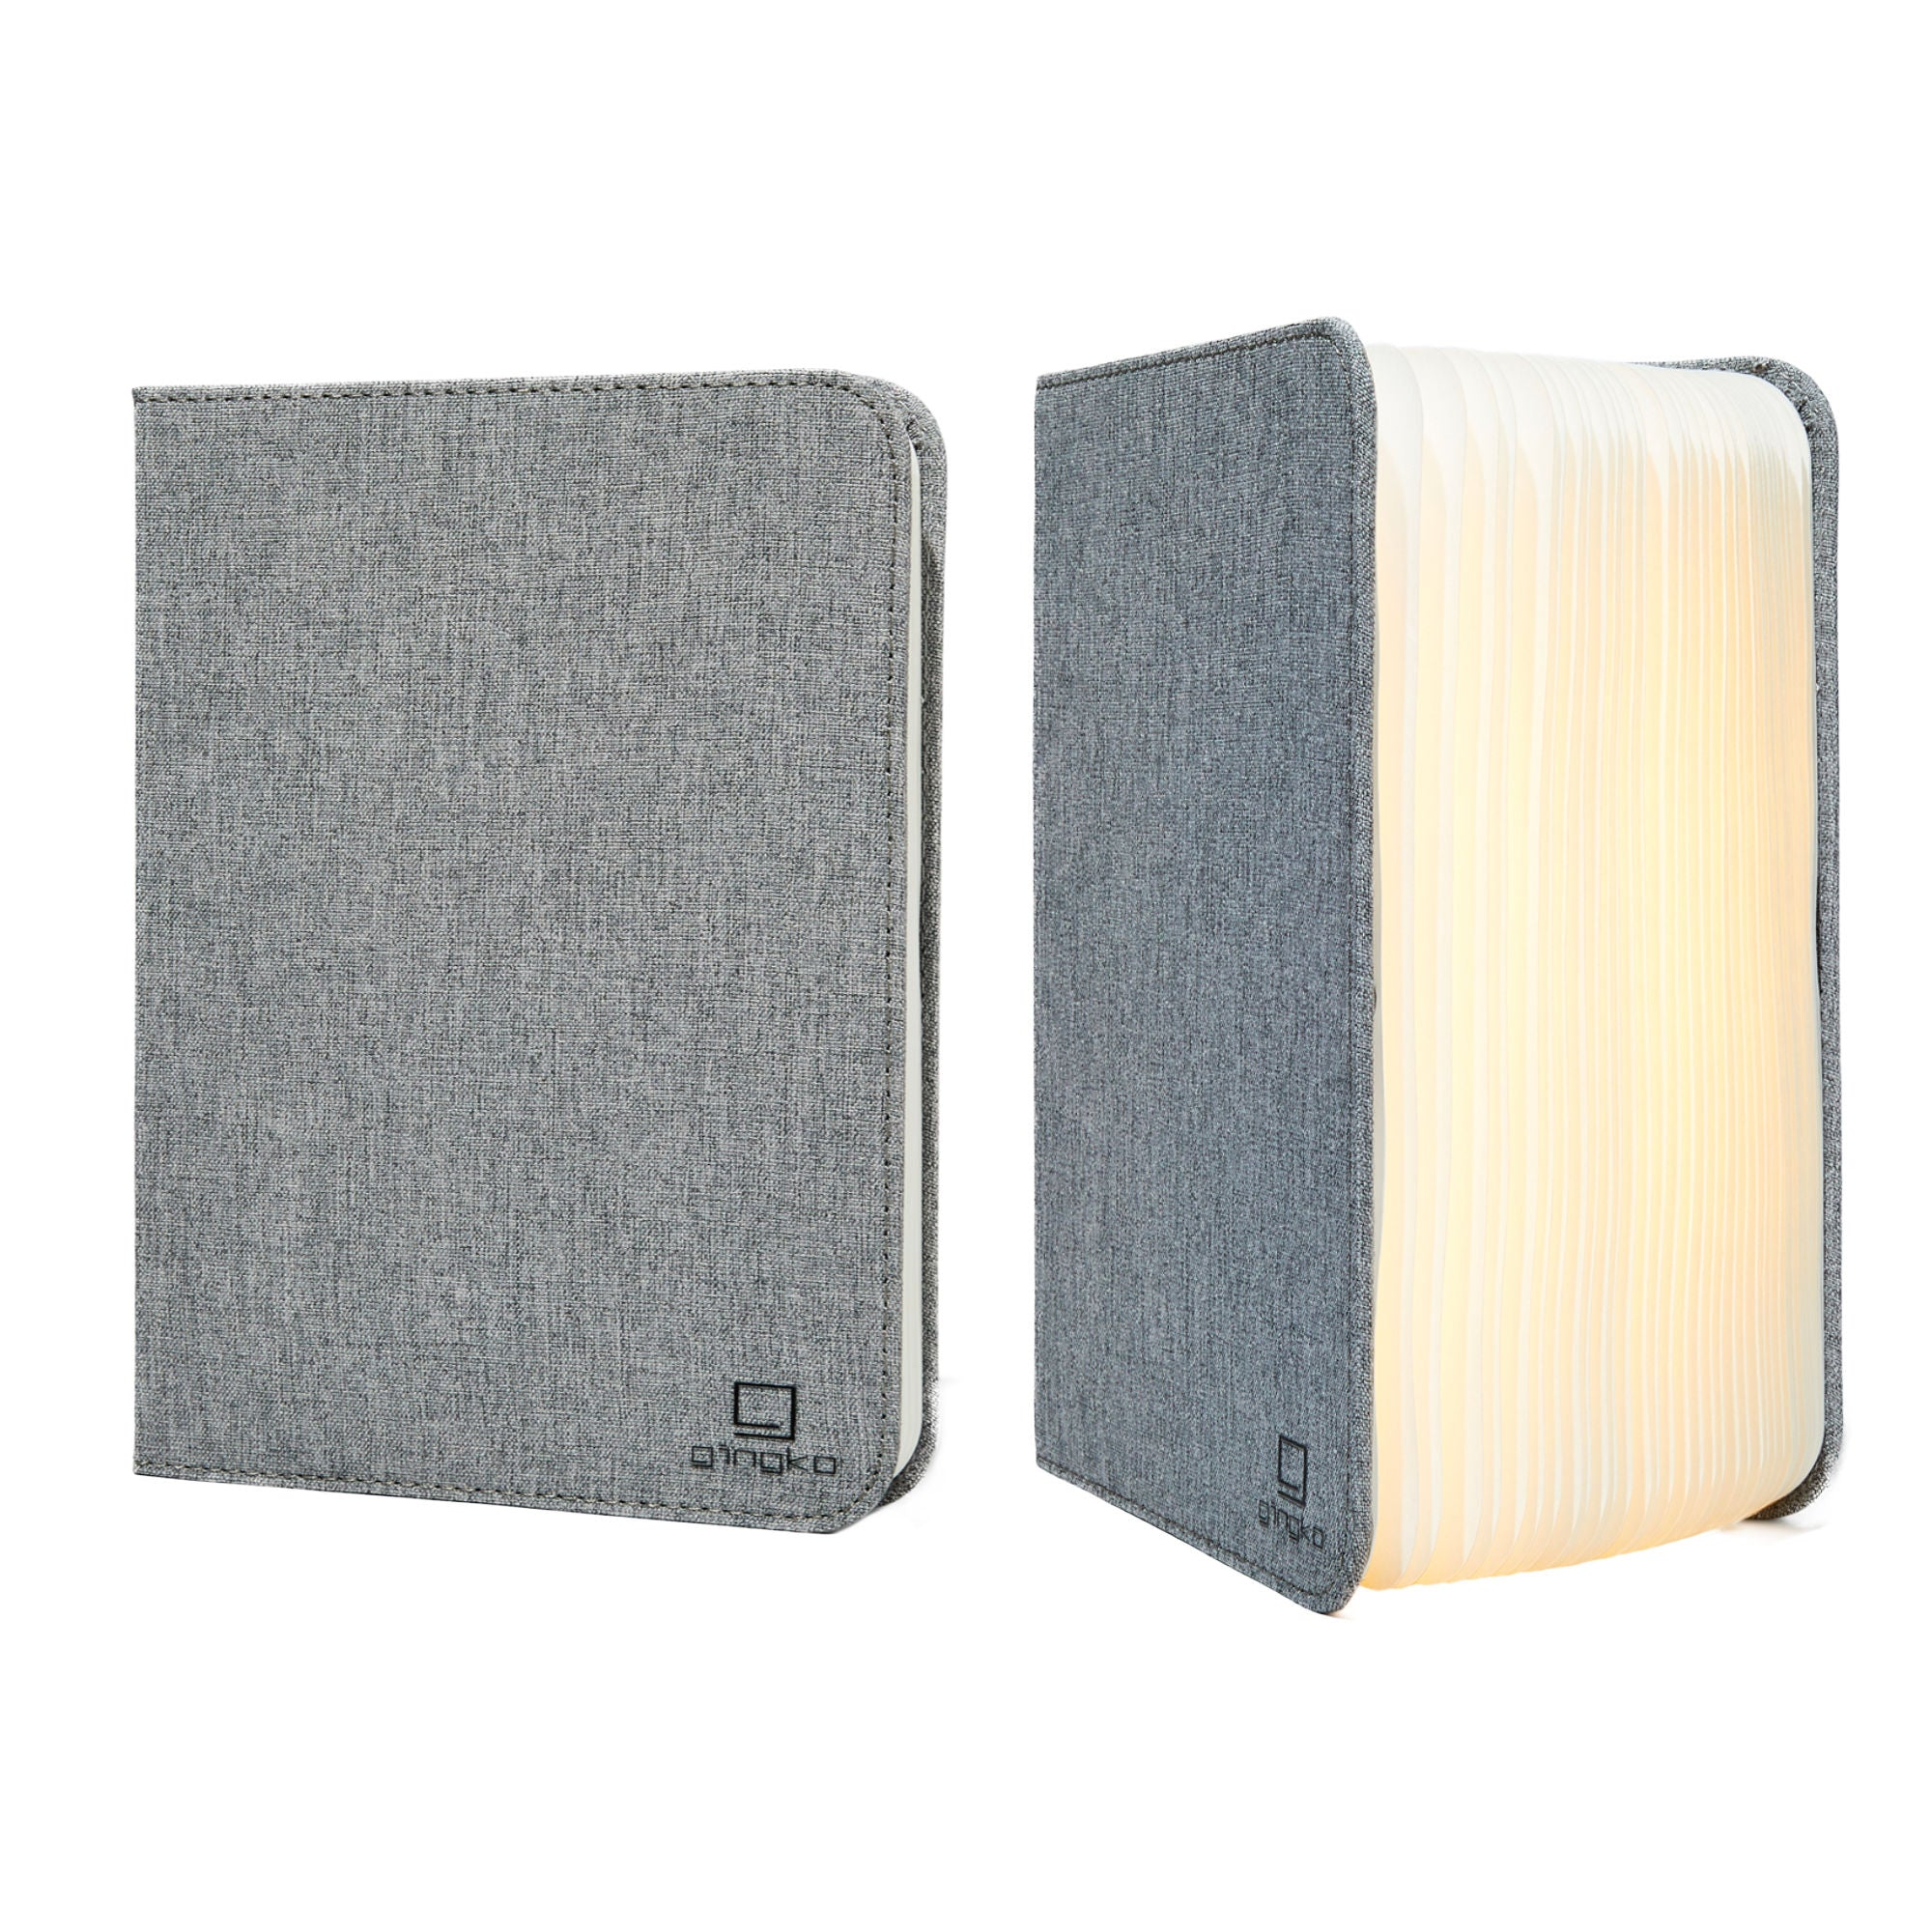 Gingko Smart booklight large , linen grey